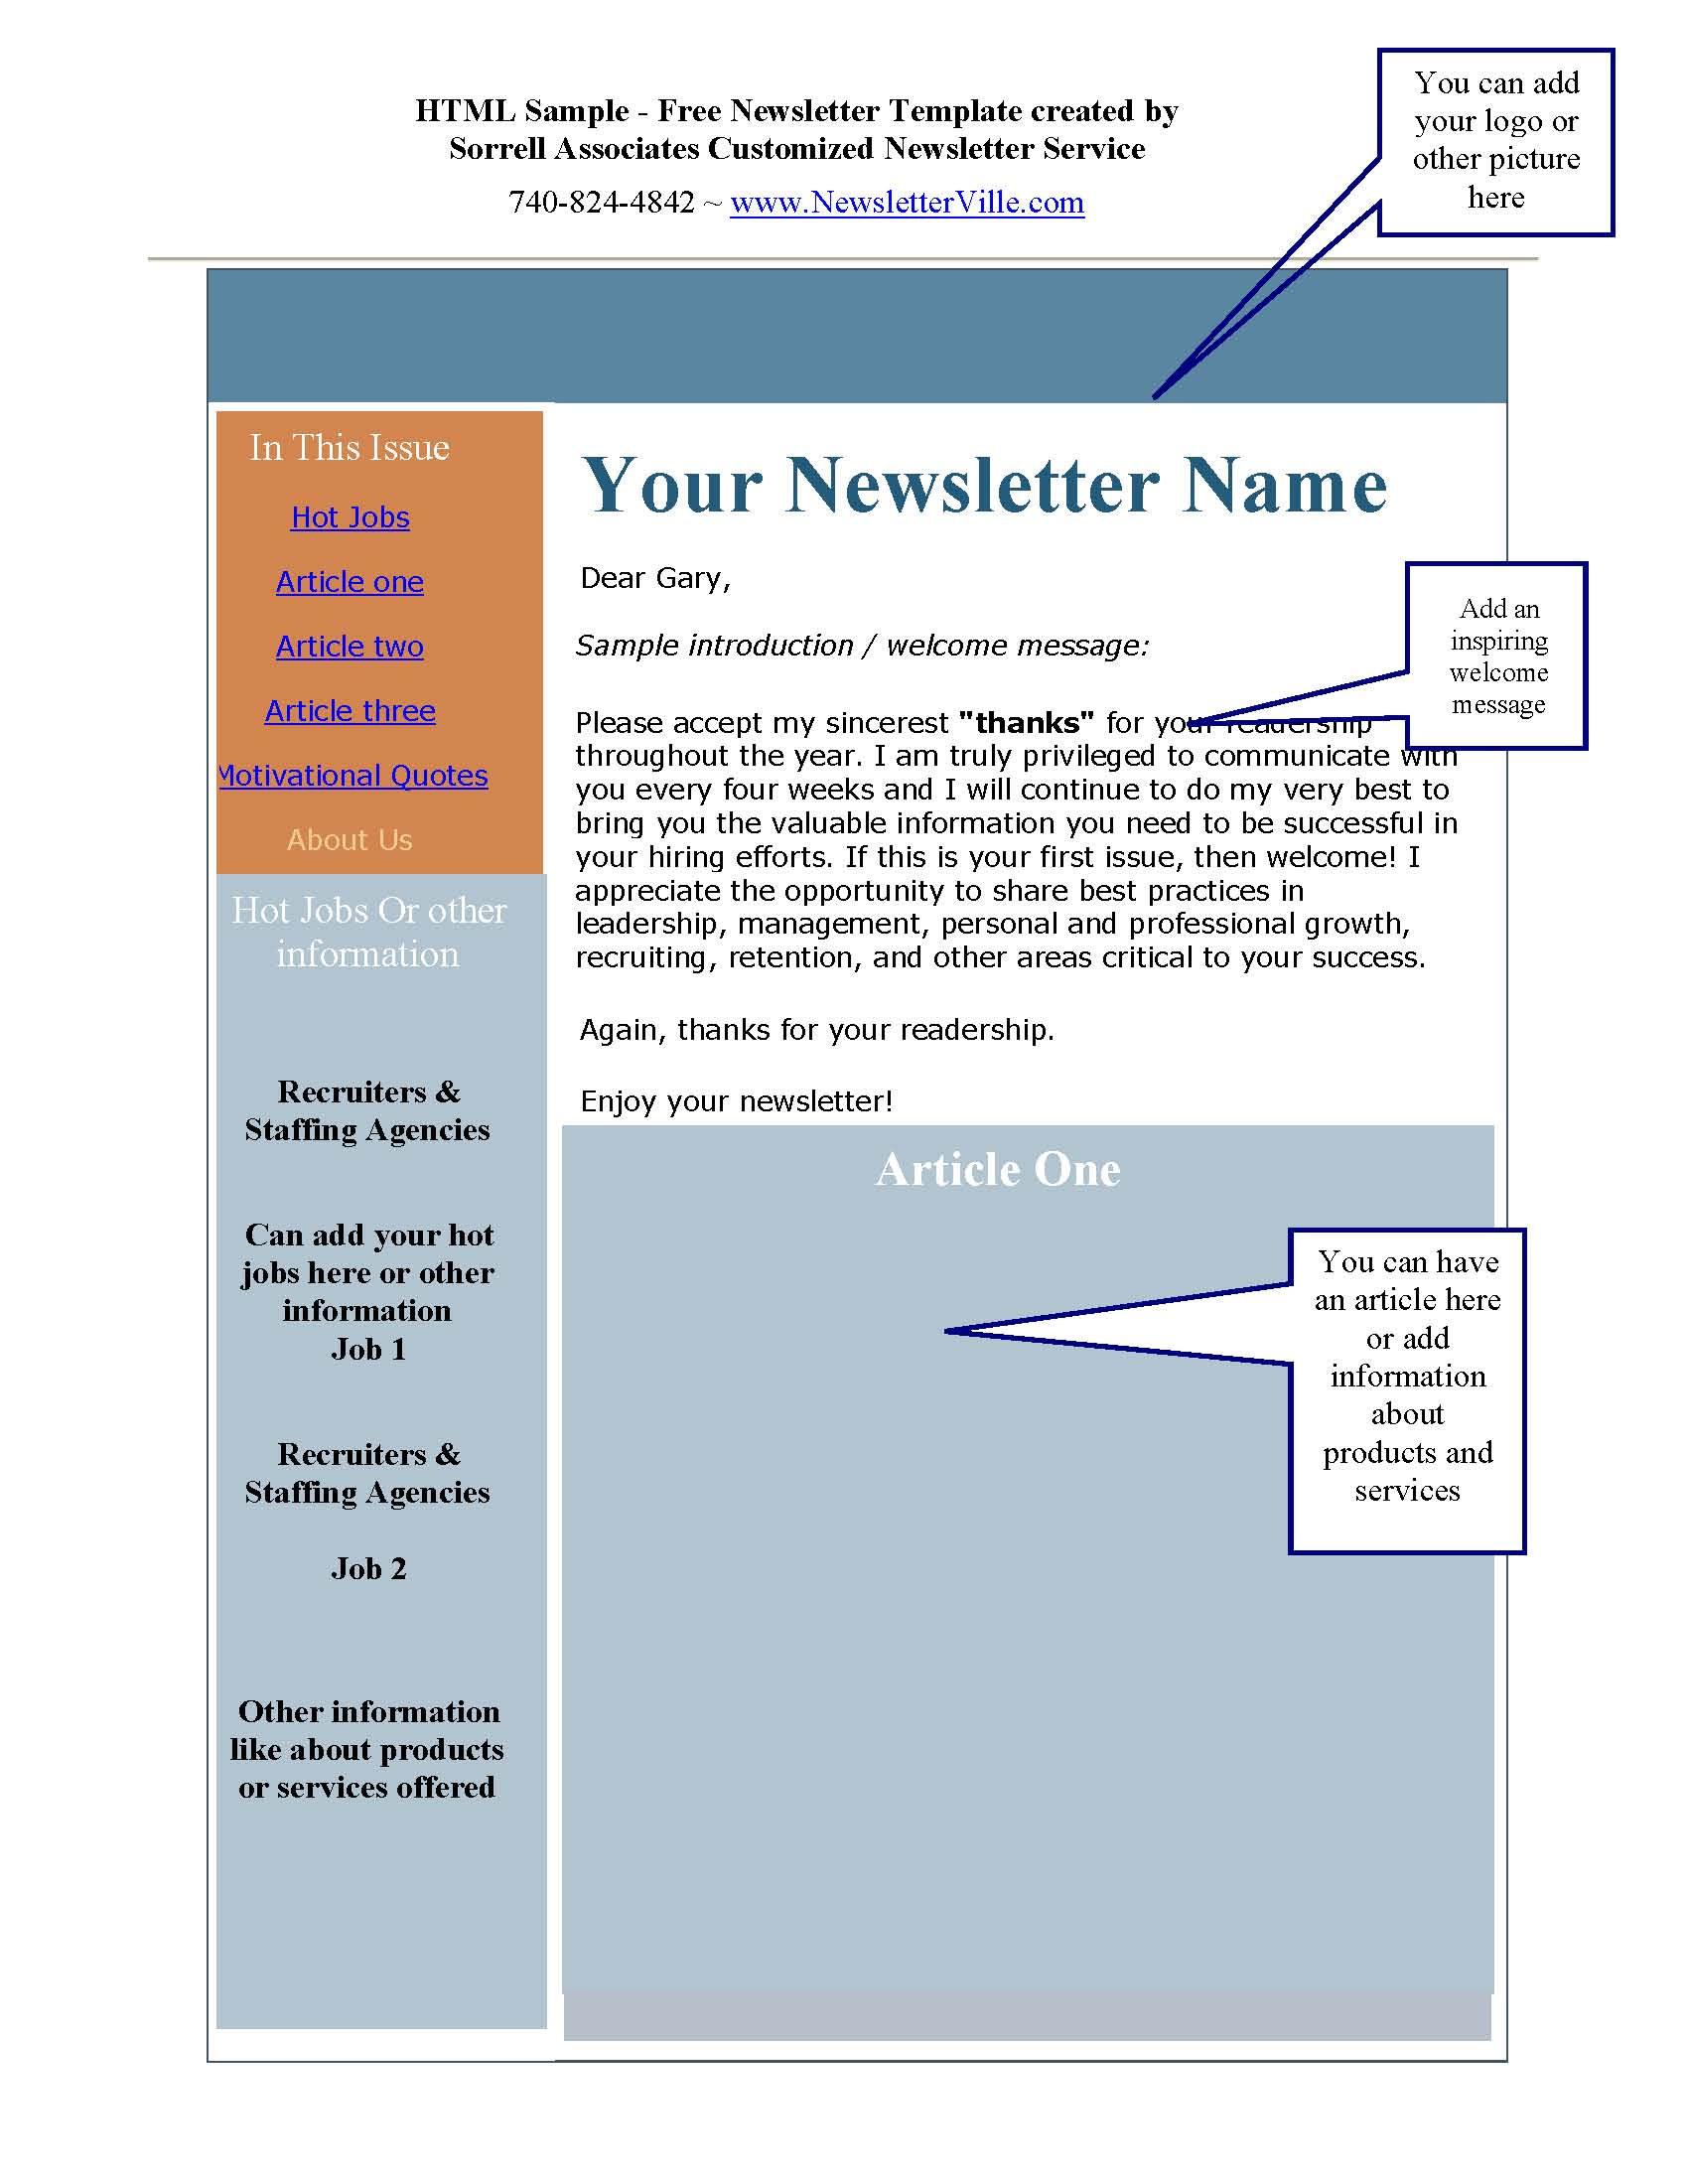 Newsletter blog articles provided plus Free Newsletter Design – Example of Newsletter Templates